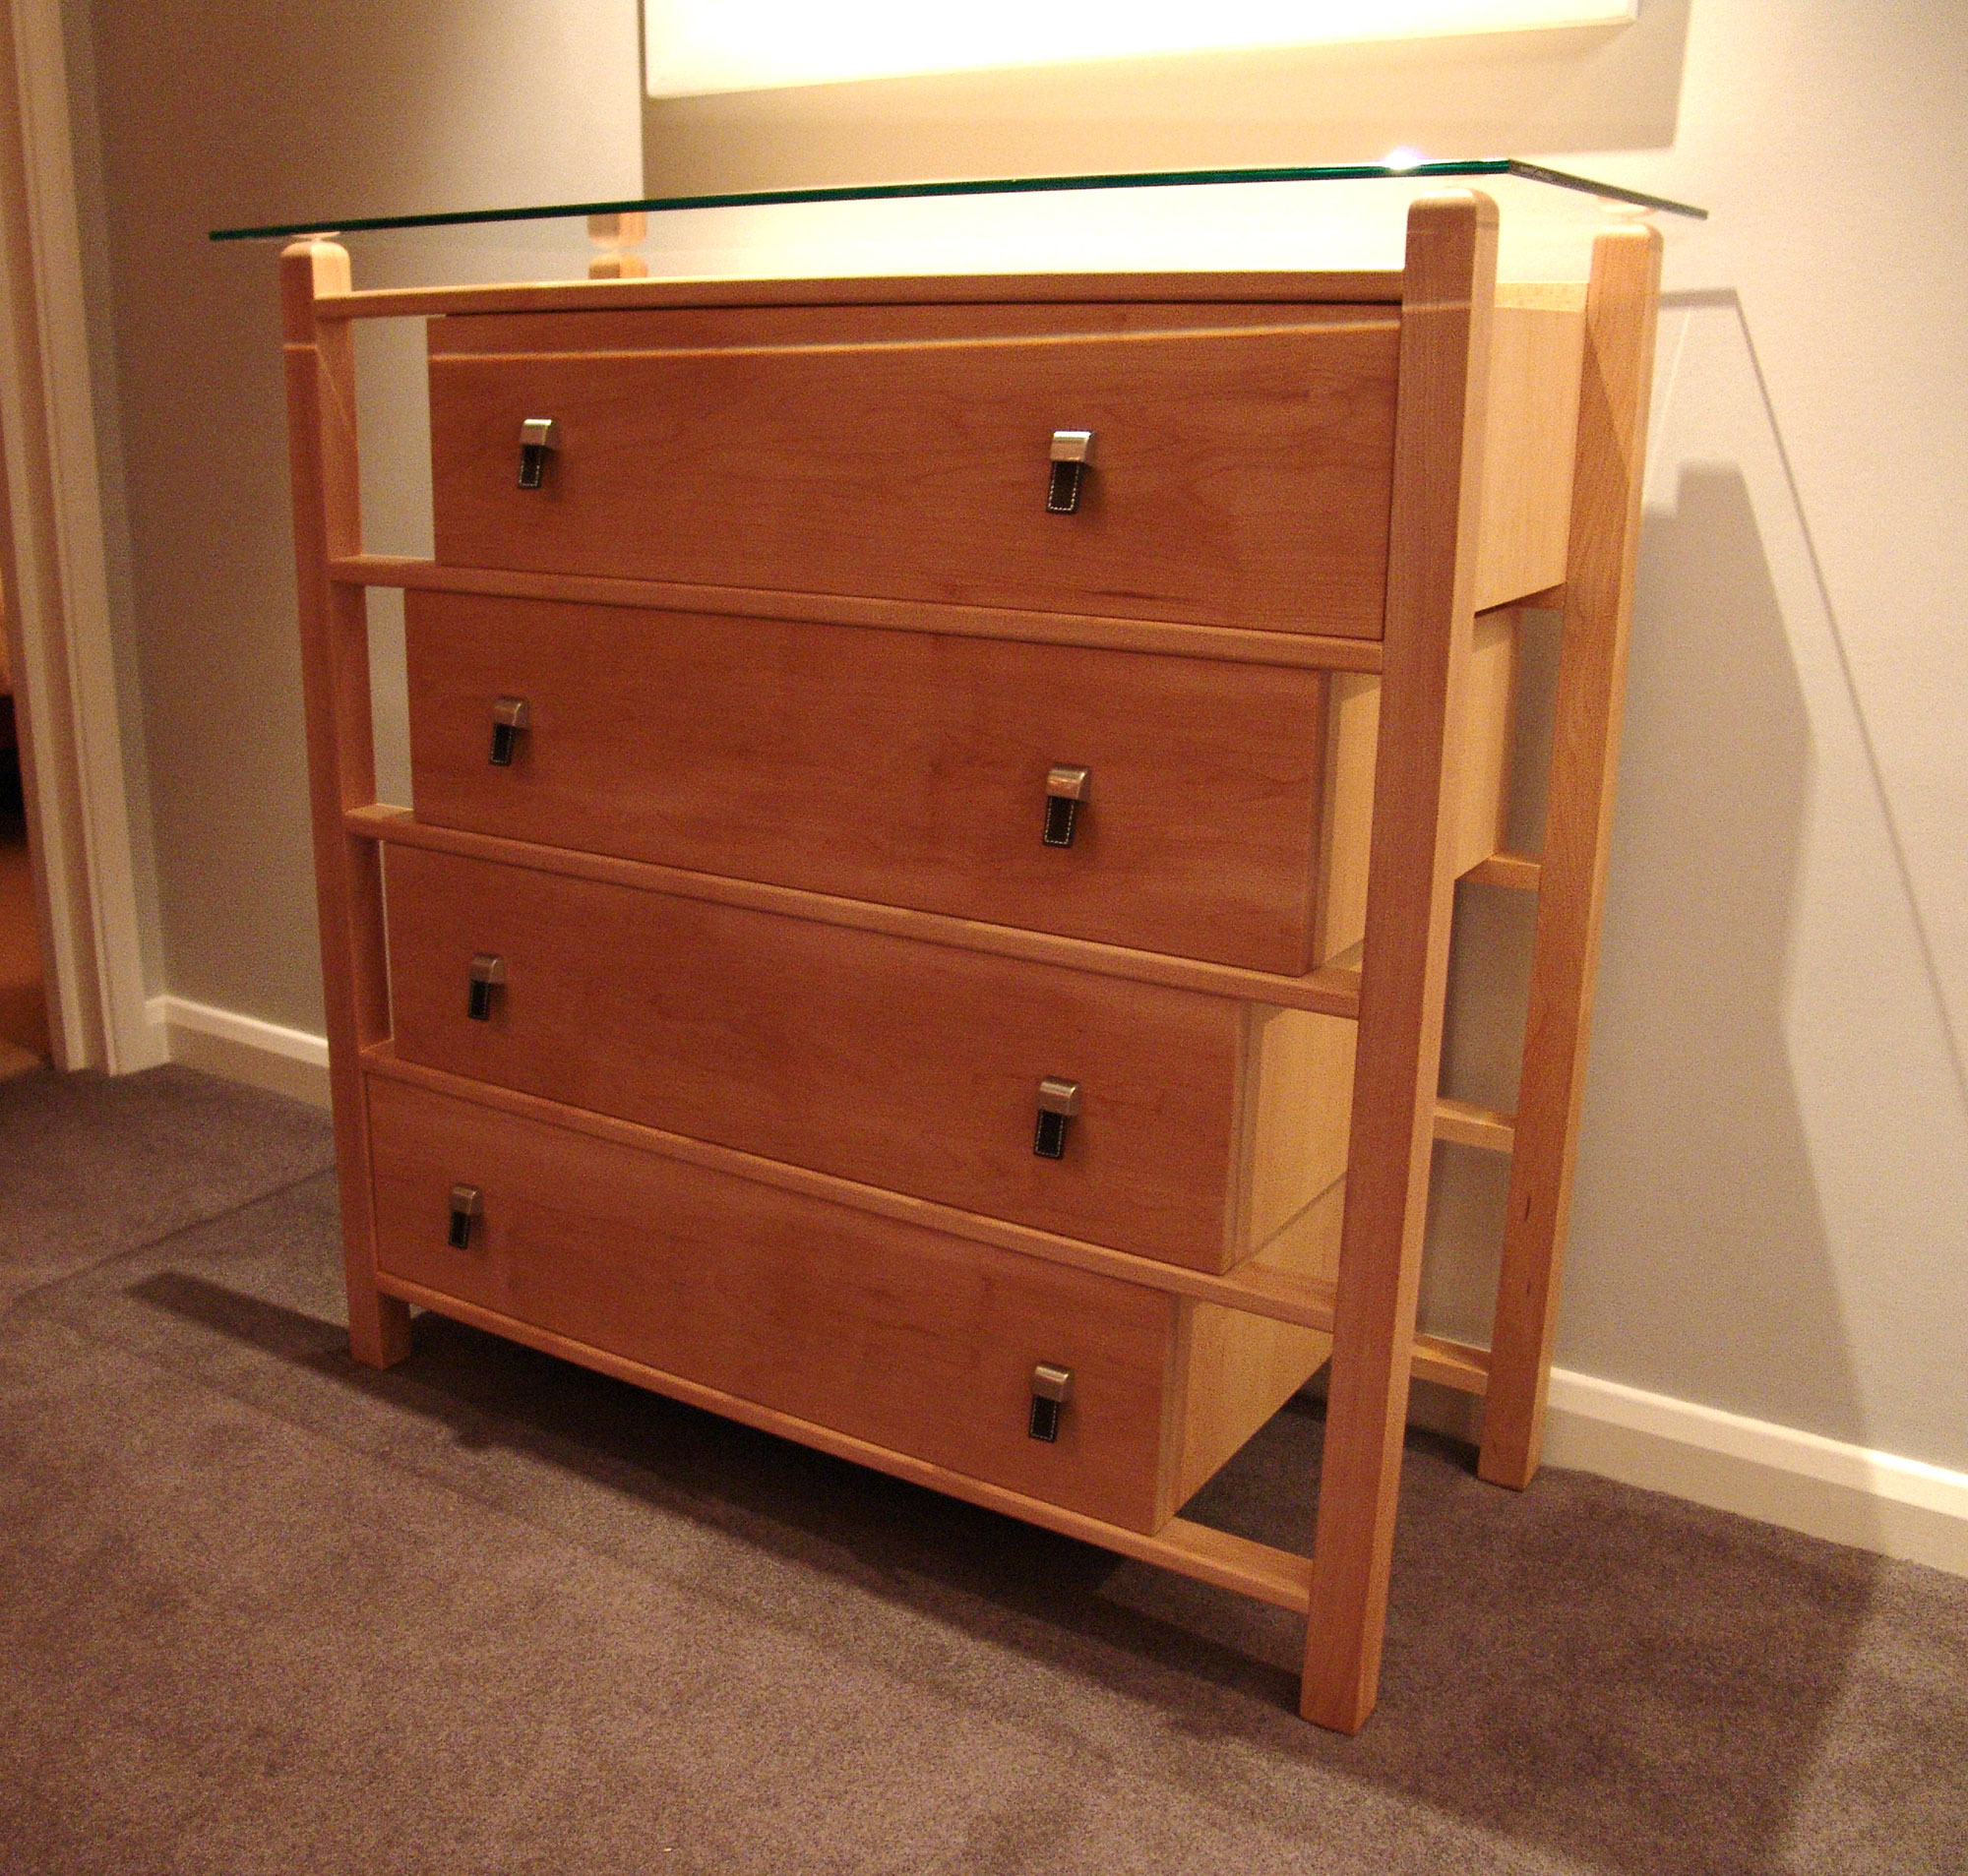 'Stepped' Drawers